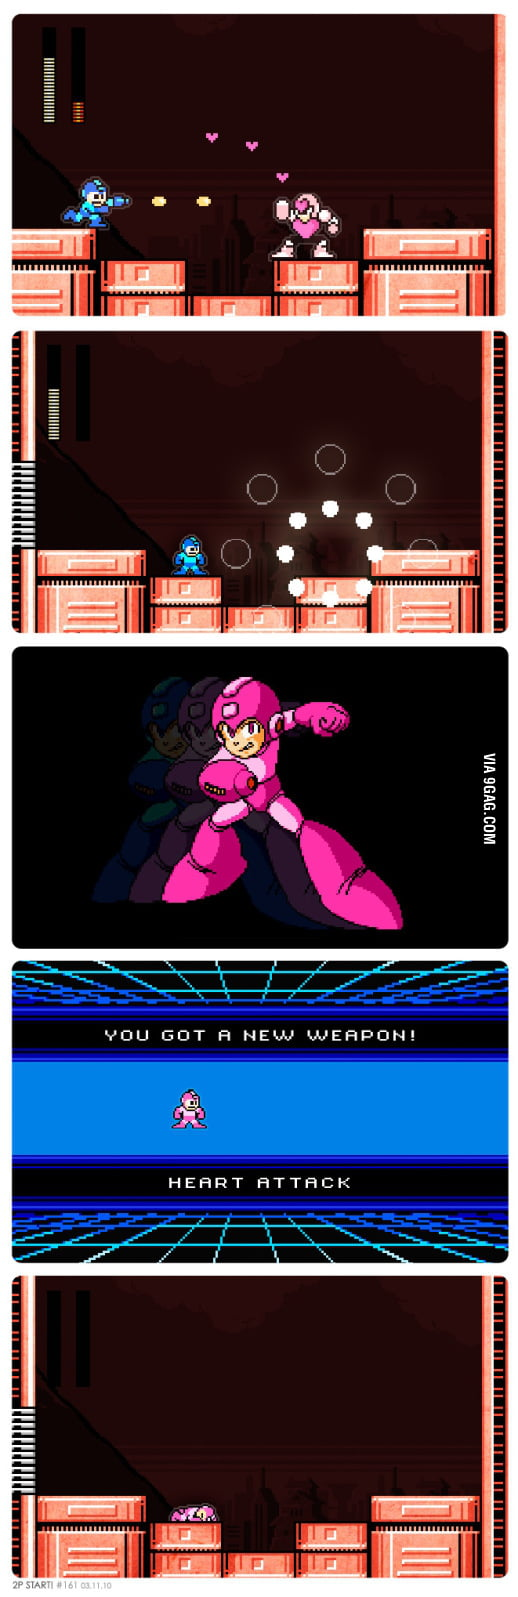 Mega Man - You got a new weapon!